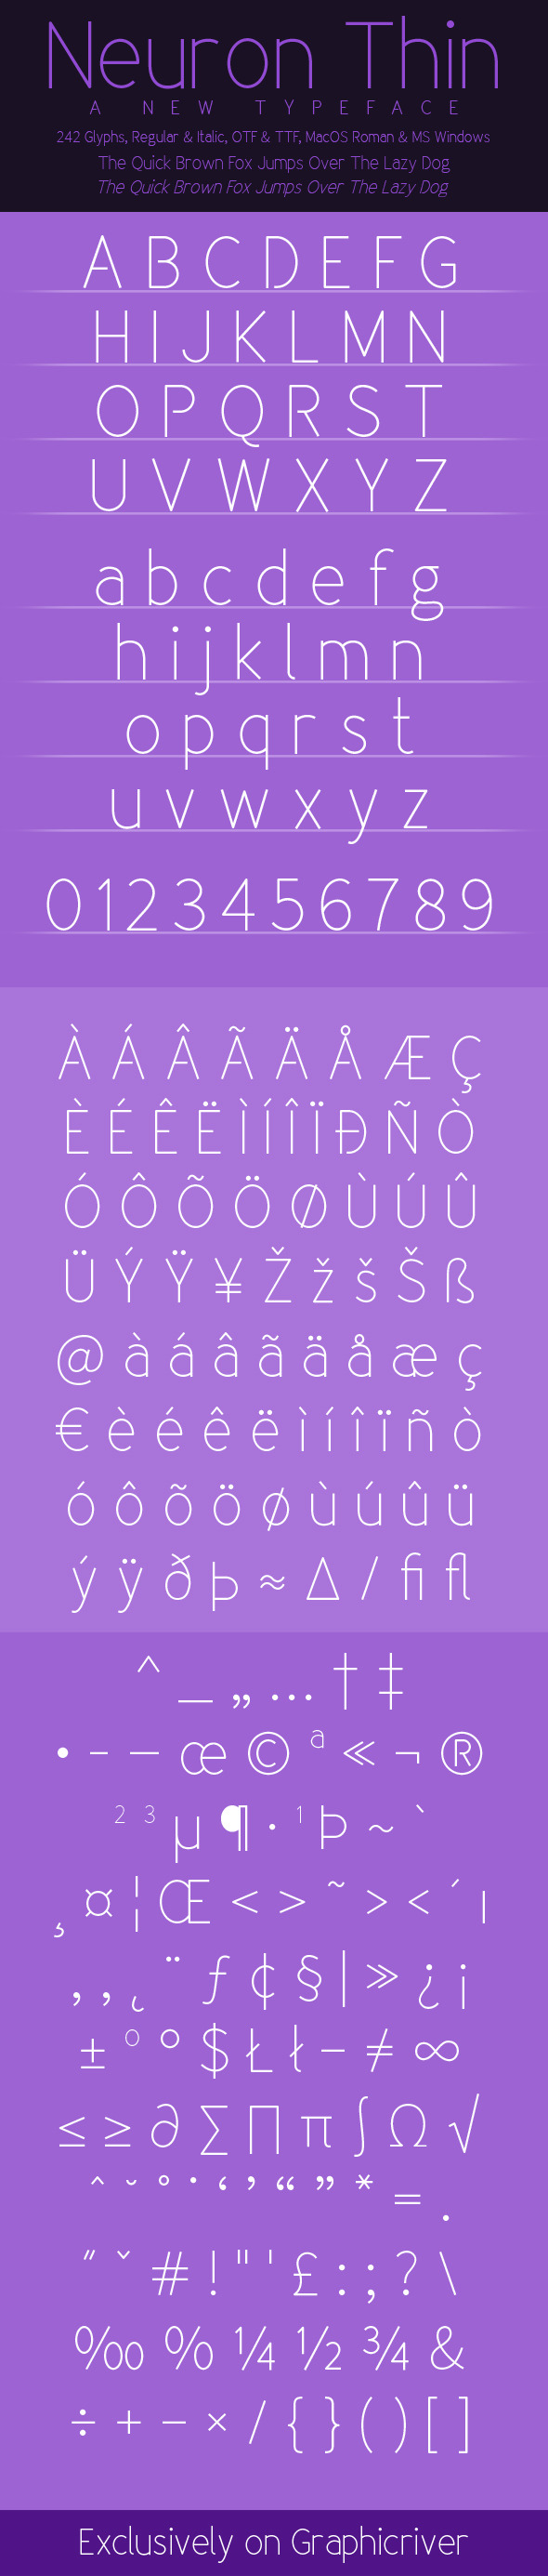 Sans-Serif Fonts from GraphicRiver (Page 8)